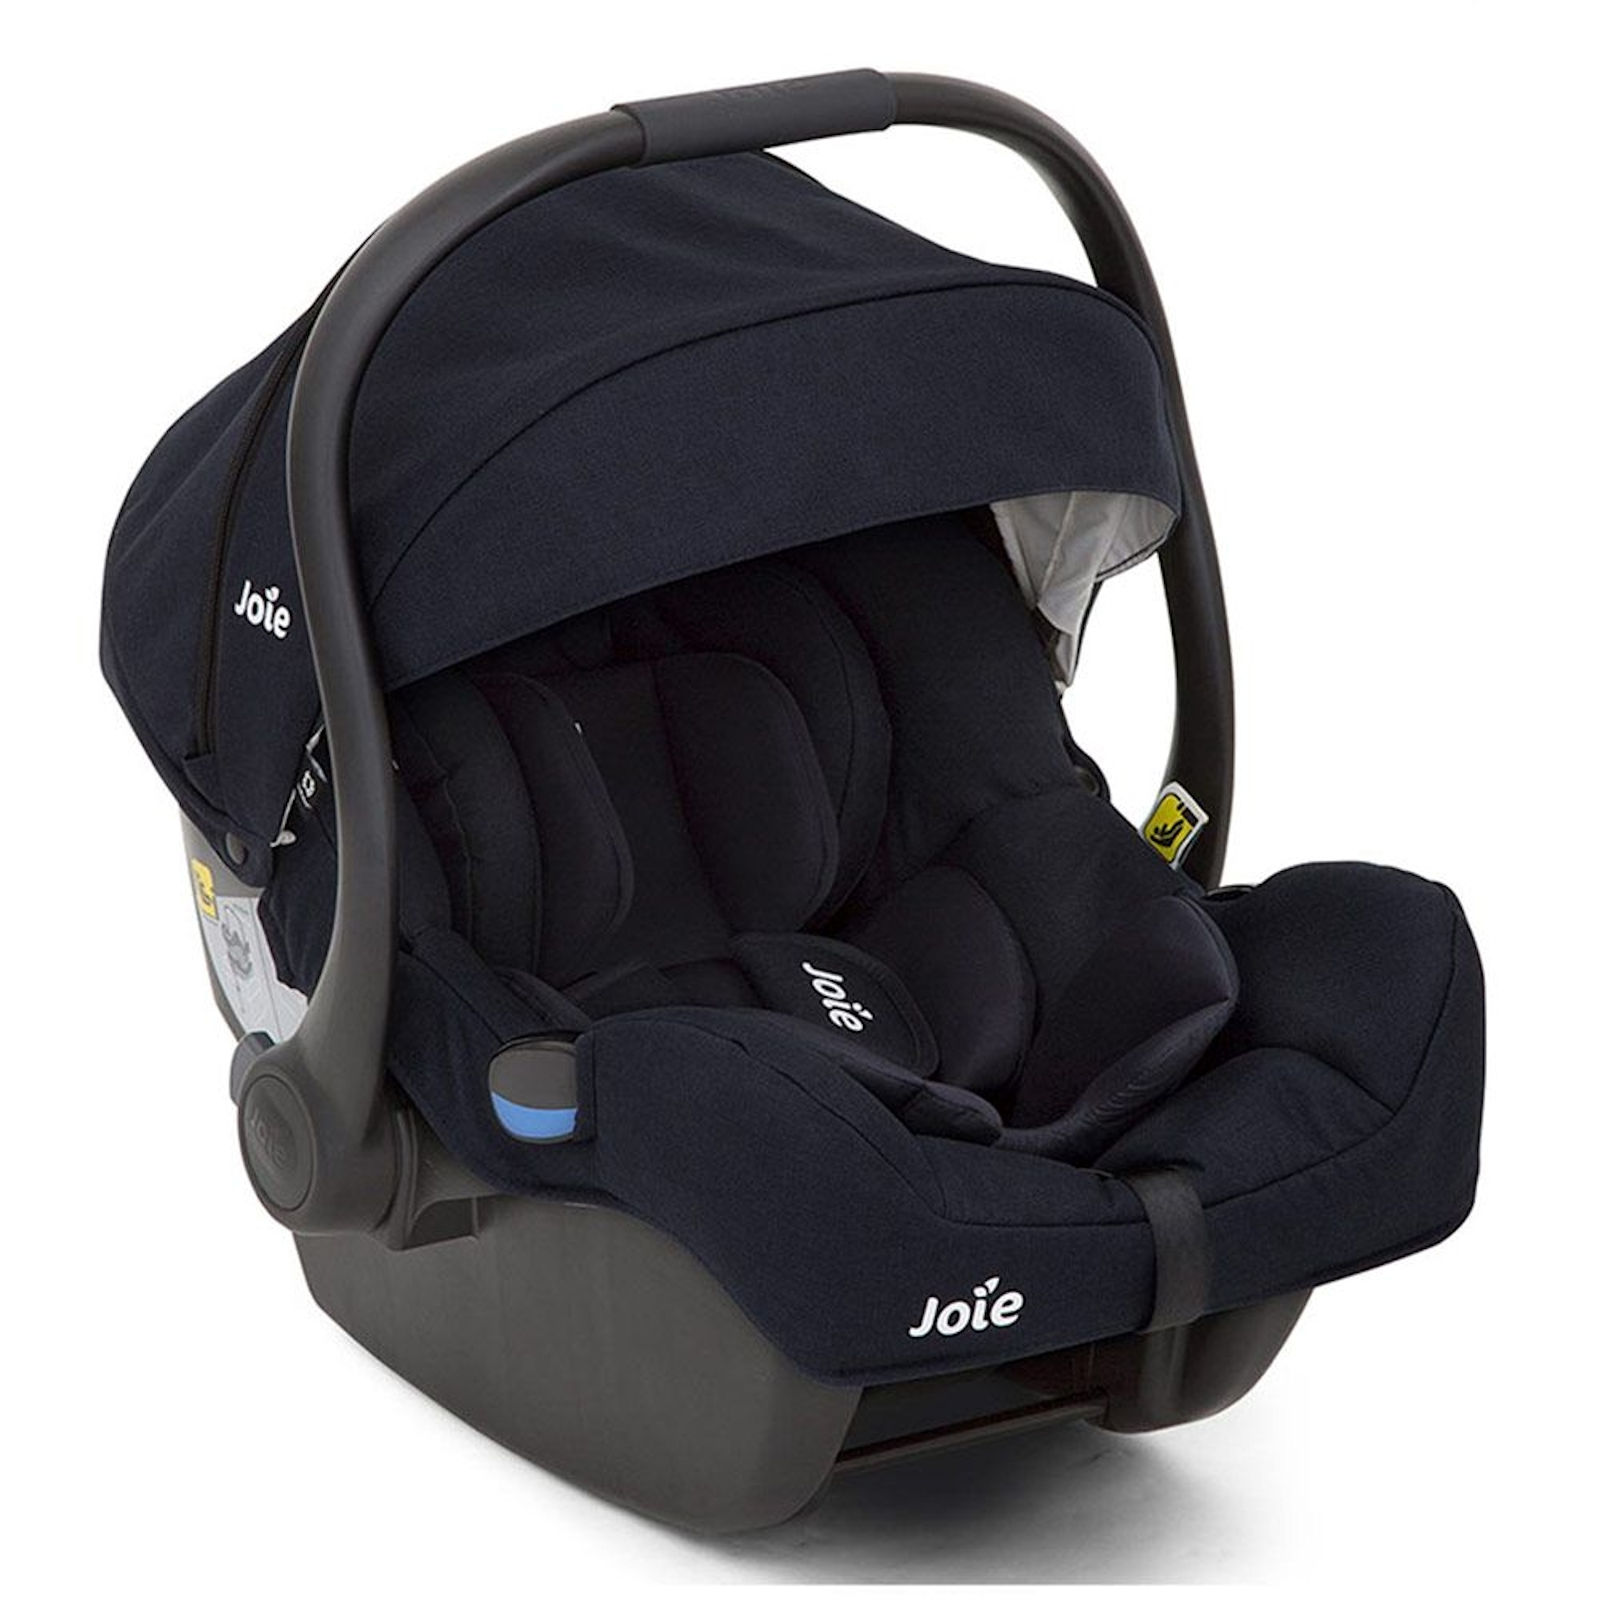 Joie Gemm & Isofix Base Bundle Joie Chrome Dlx I Venture I Gemm Travel System With